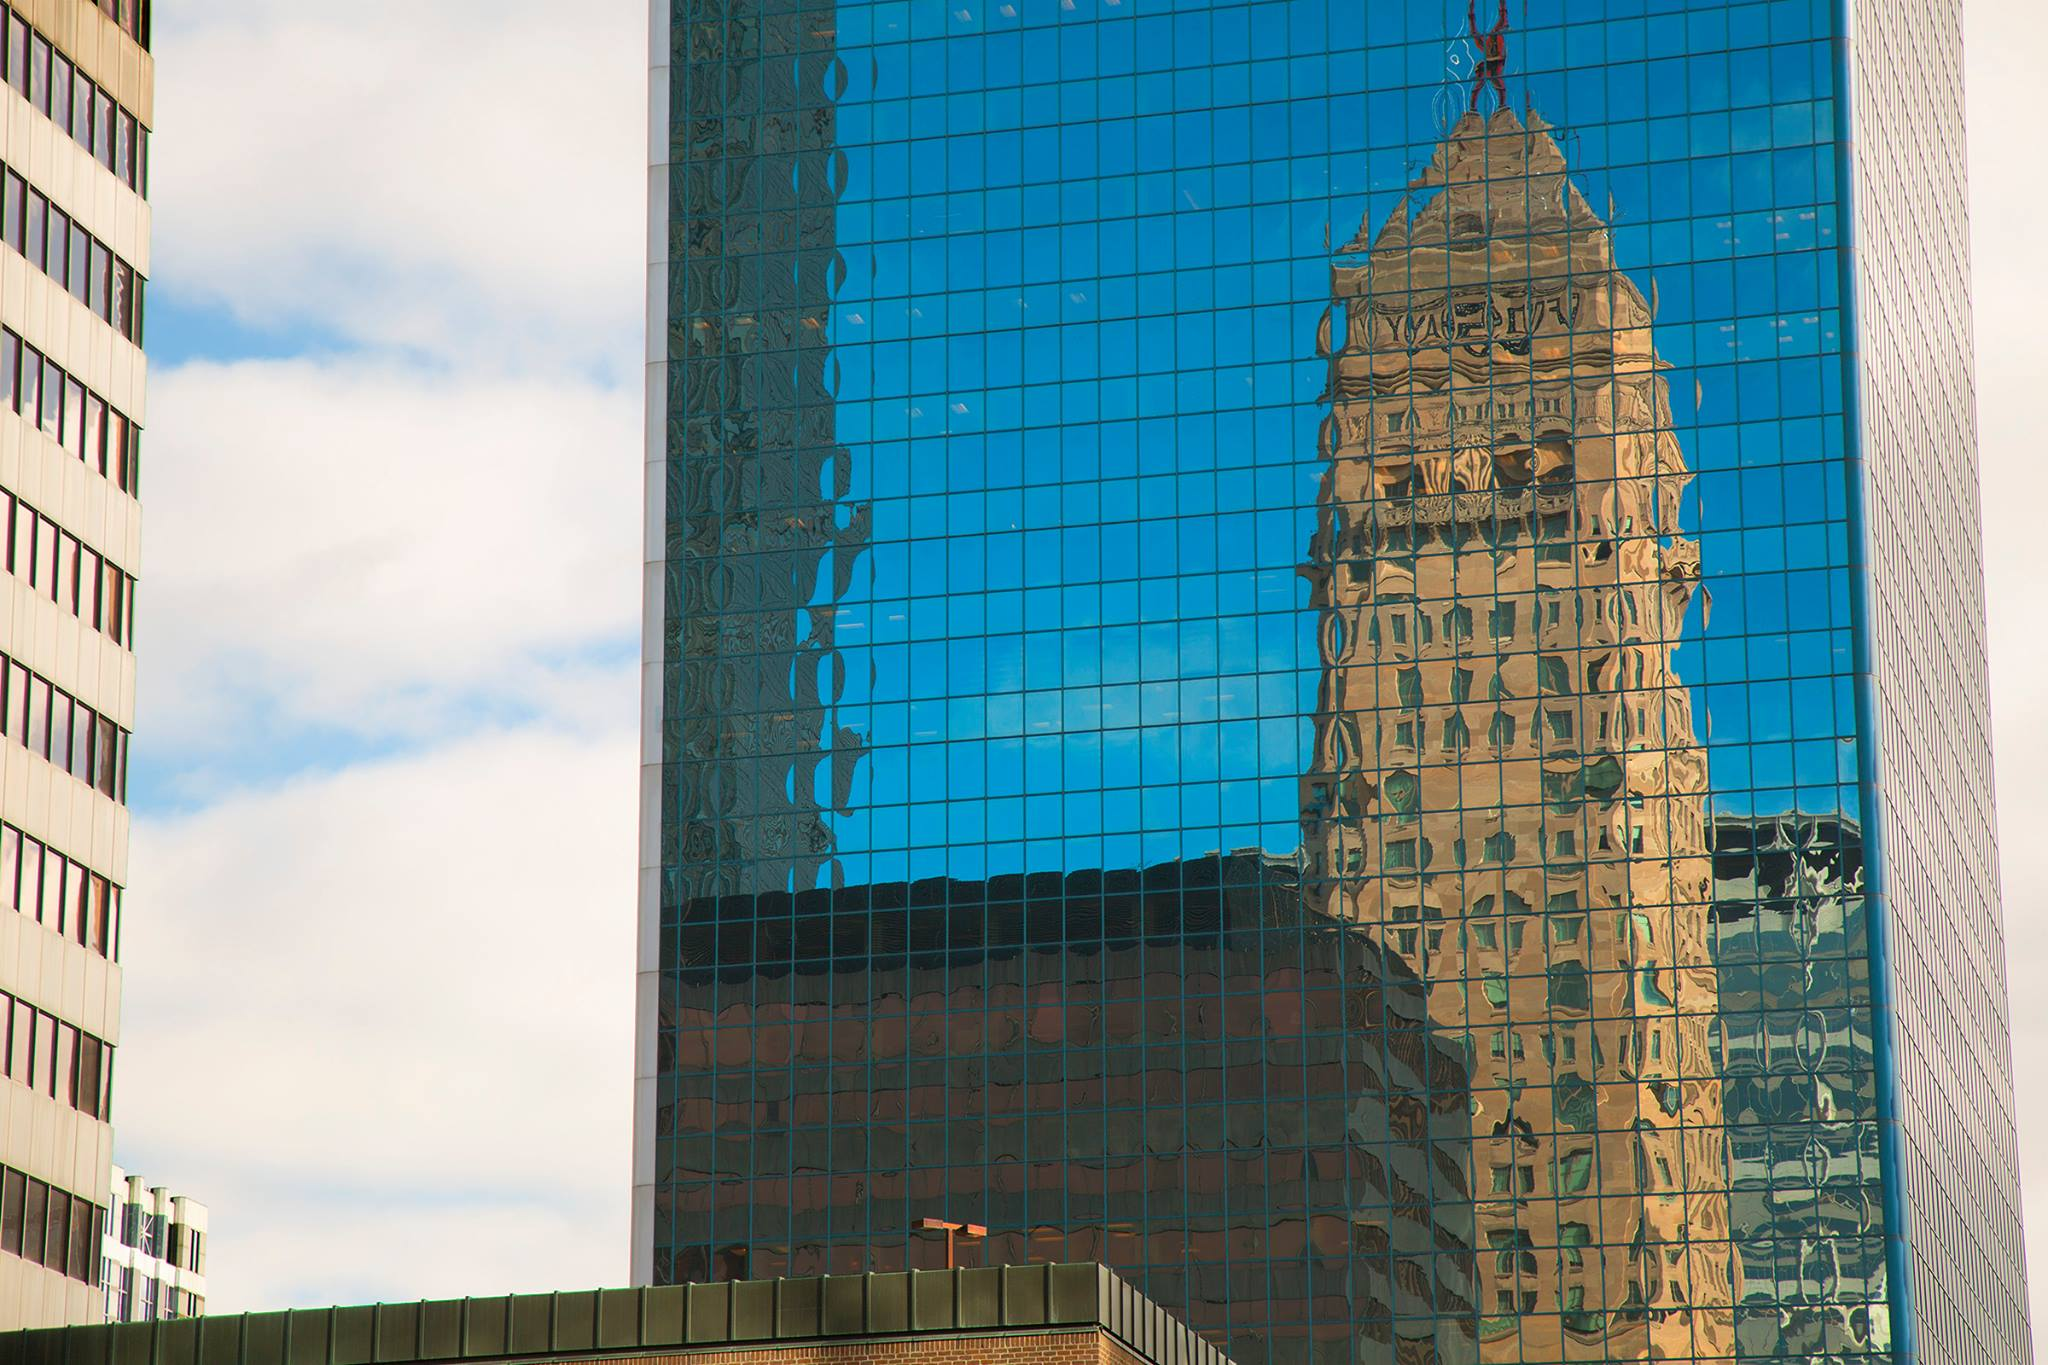 Reflections of the Foshay